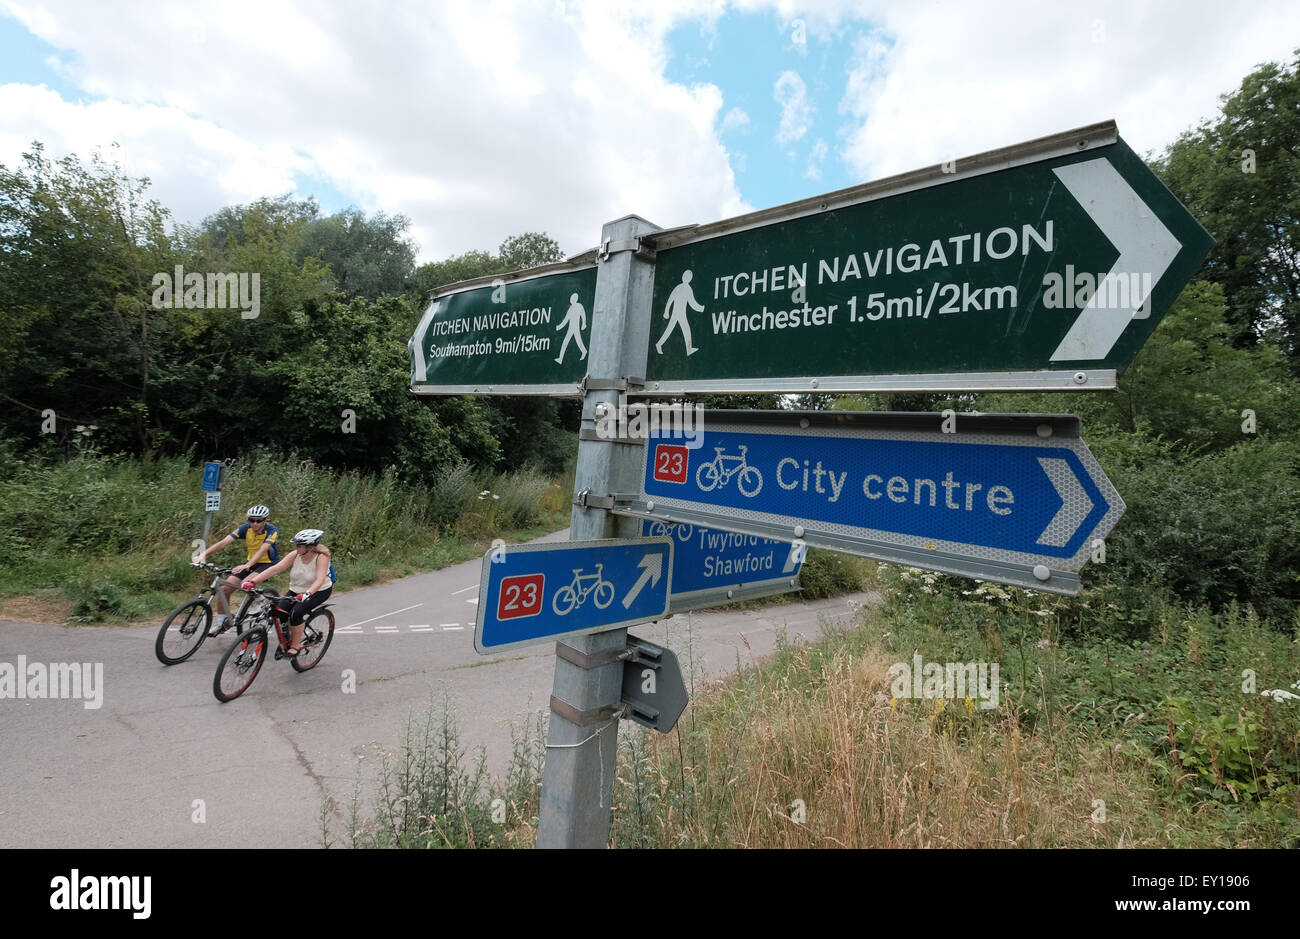 Itchen Navigation footpath signpost and National Cycle Network route 23 sign on route to Winchester - Stock Image